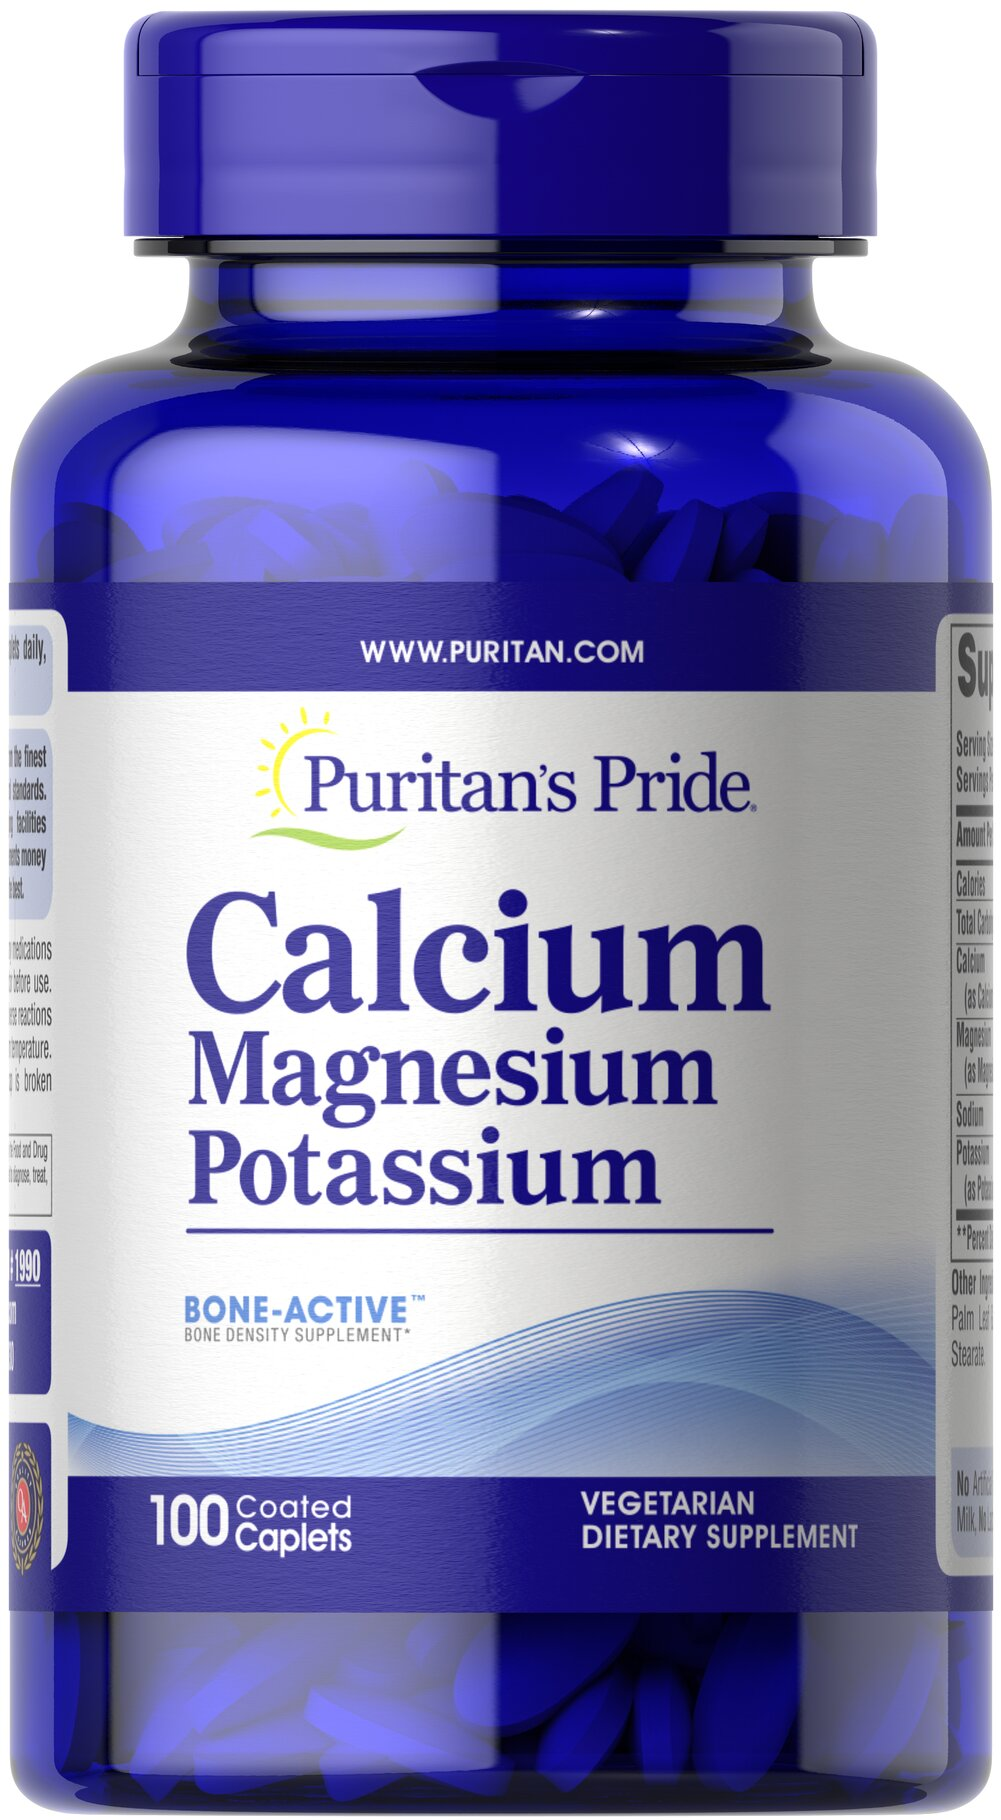 Calcium Magnesium Potassium <p>Cal/Mag/Potassium tablets contain three important minerals (calcium, magnesium, and potassium) that work together synergistically for better absorption and bioavailability.</p><p><strong>Two (2) tablets contain 500 mg Calcium, 500 mg Magnesium and 99 mg Potassium.</strong></p> 100 Caplets 250 mg/49 mg $8.99